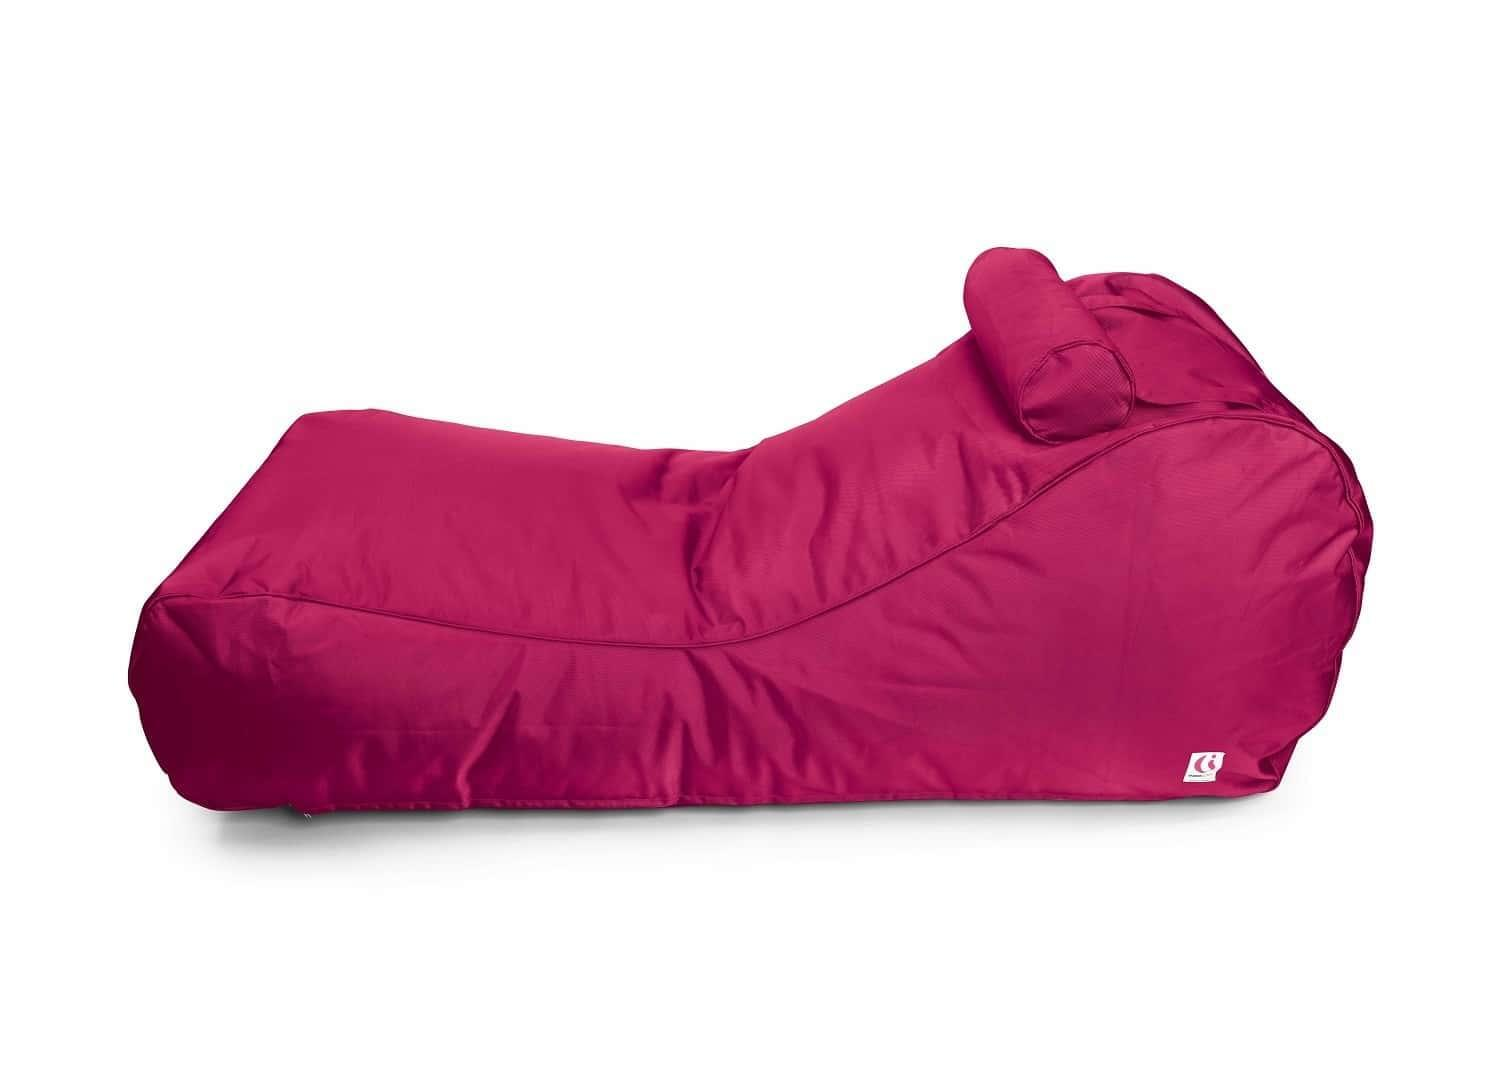 Indosoul Canggu Contour Lounger Outdoor Bean Bag Pink